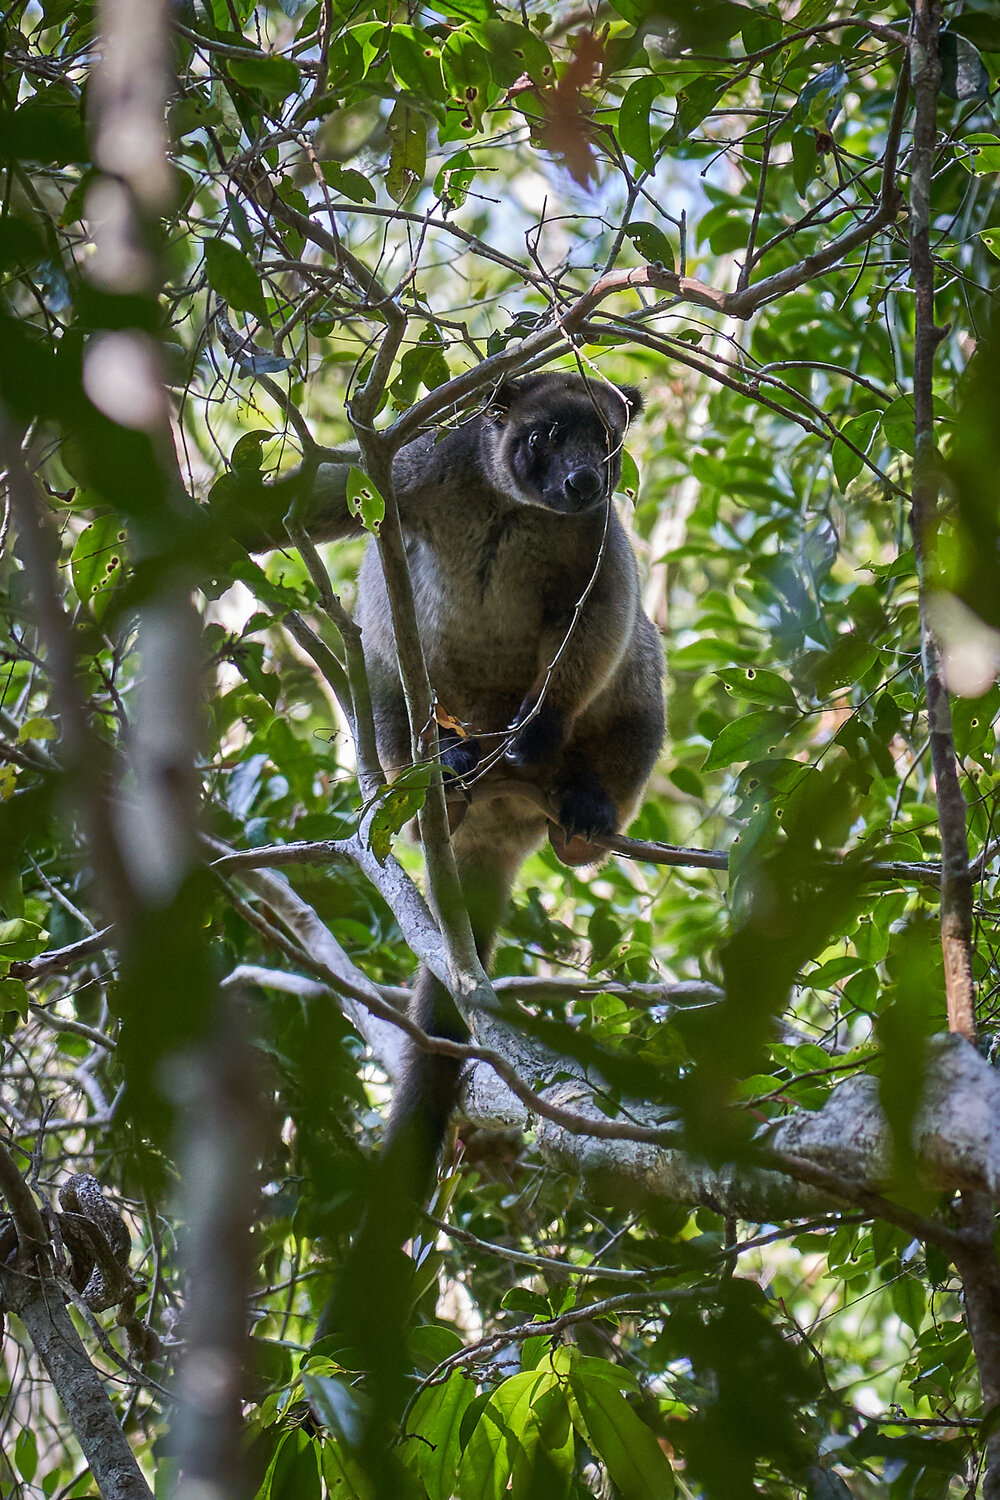 The first Tree Kangaroo my wife and I have seen in the wild.